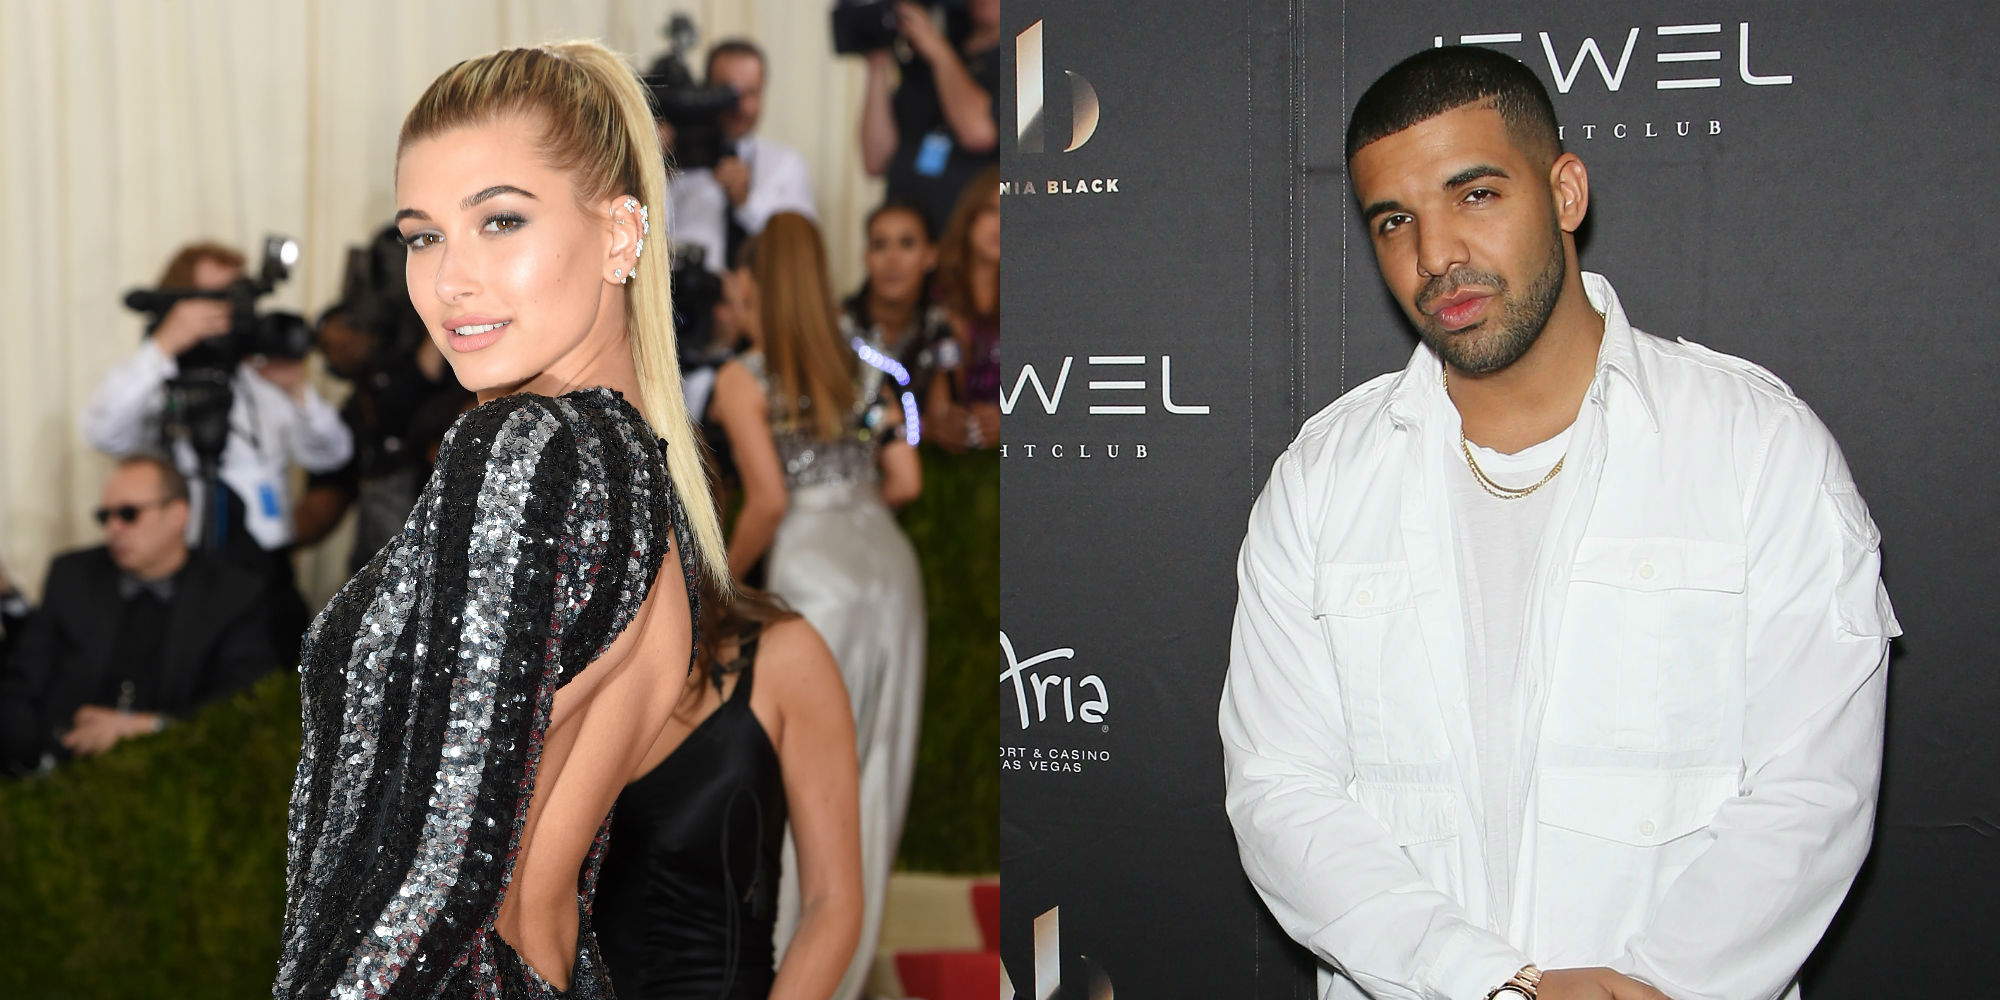 celebrity couples dating Shawn mendes and hailey baldwin made their couple debut at the 2018  including all those dating rumors and when they  12 celebrity couples that got engaged.